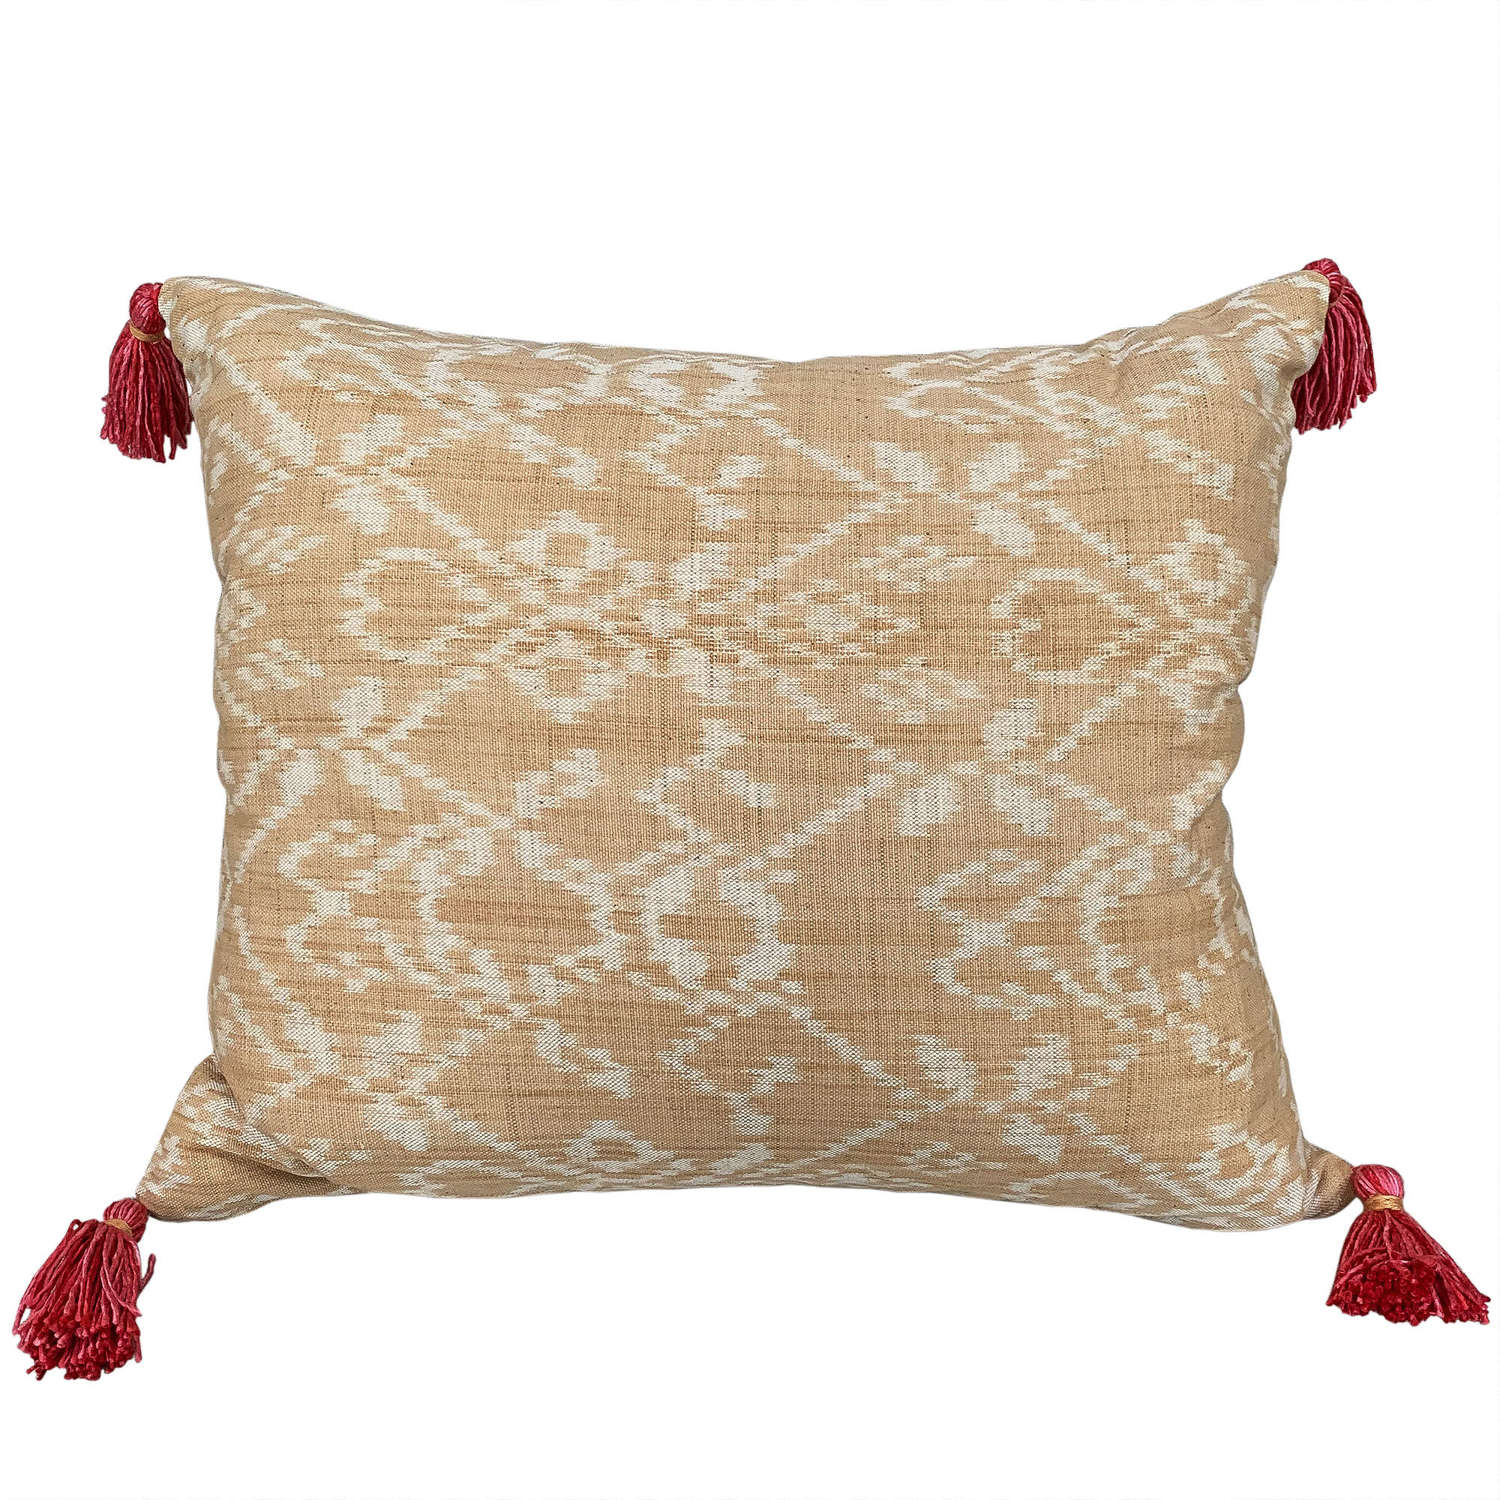 Rote ikat cushion with pink tassels